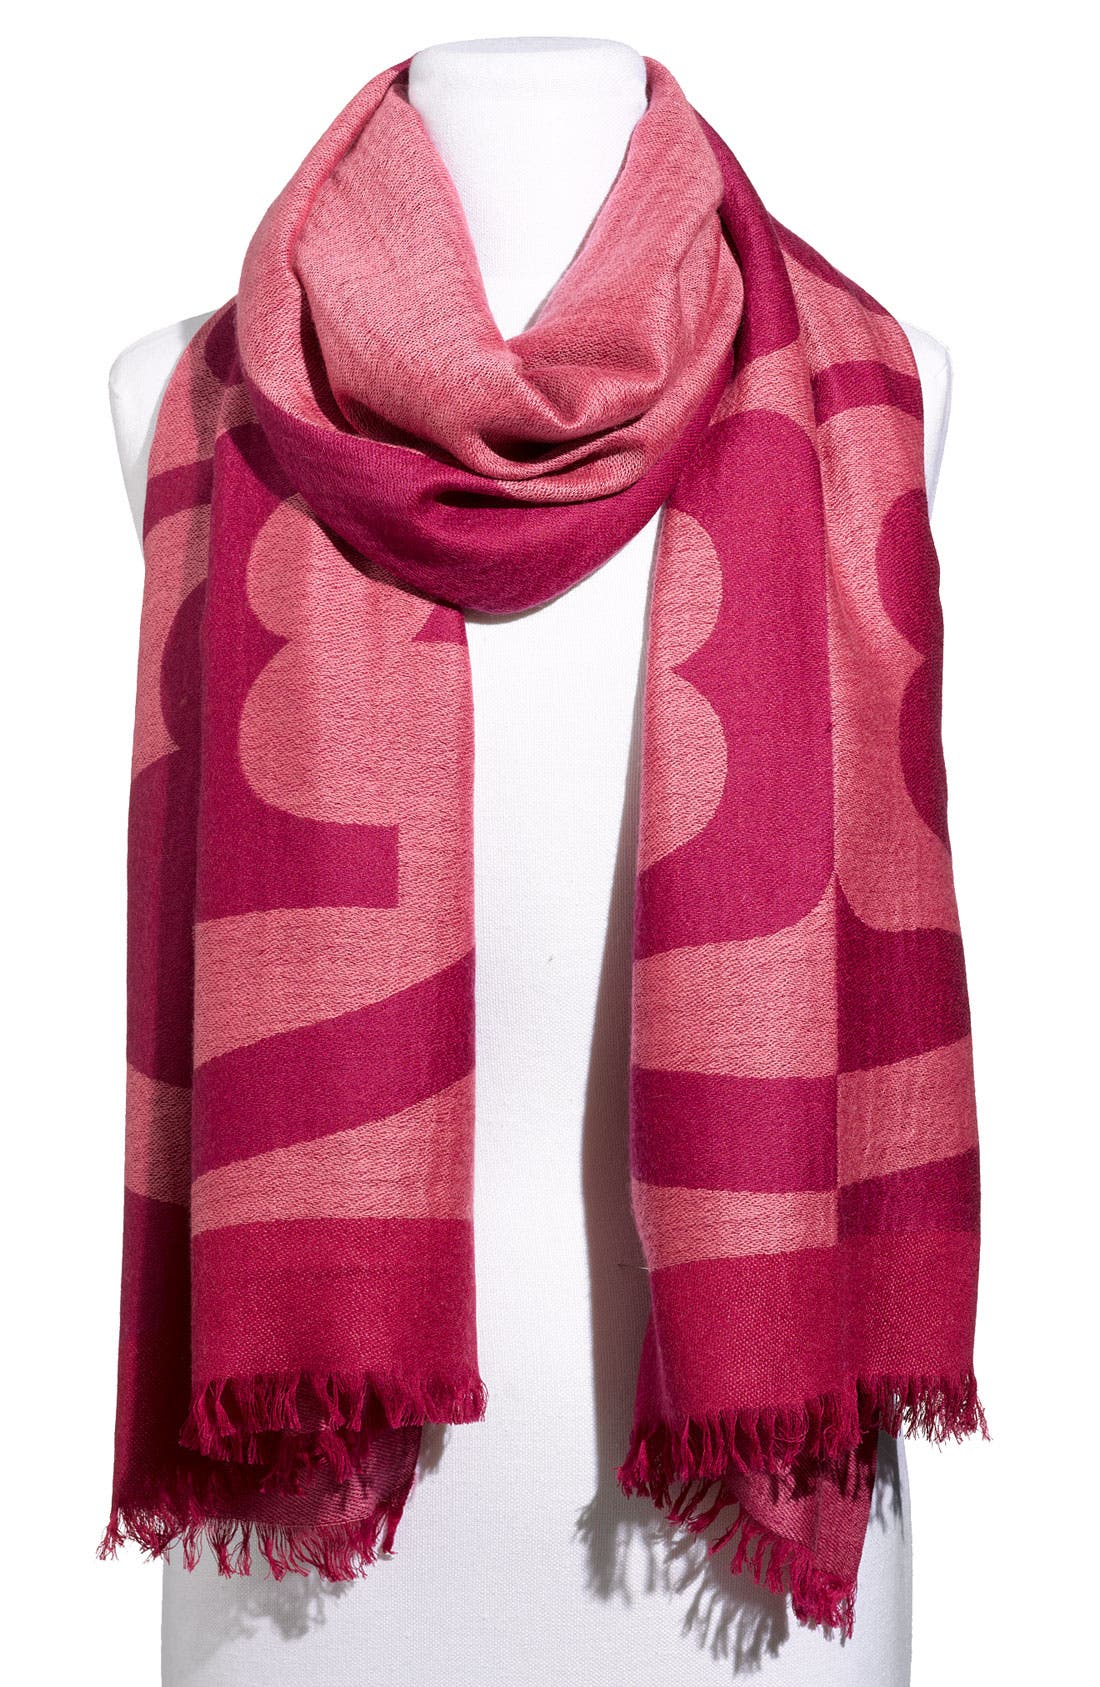 Main Image - Tory Burch 'Reva' Wool Scarf